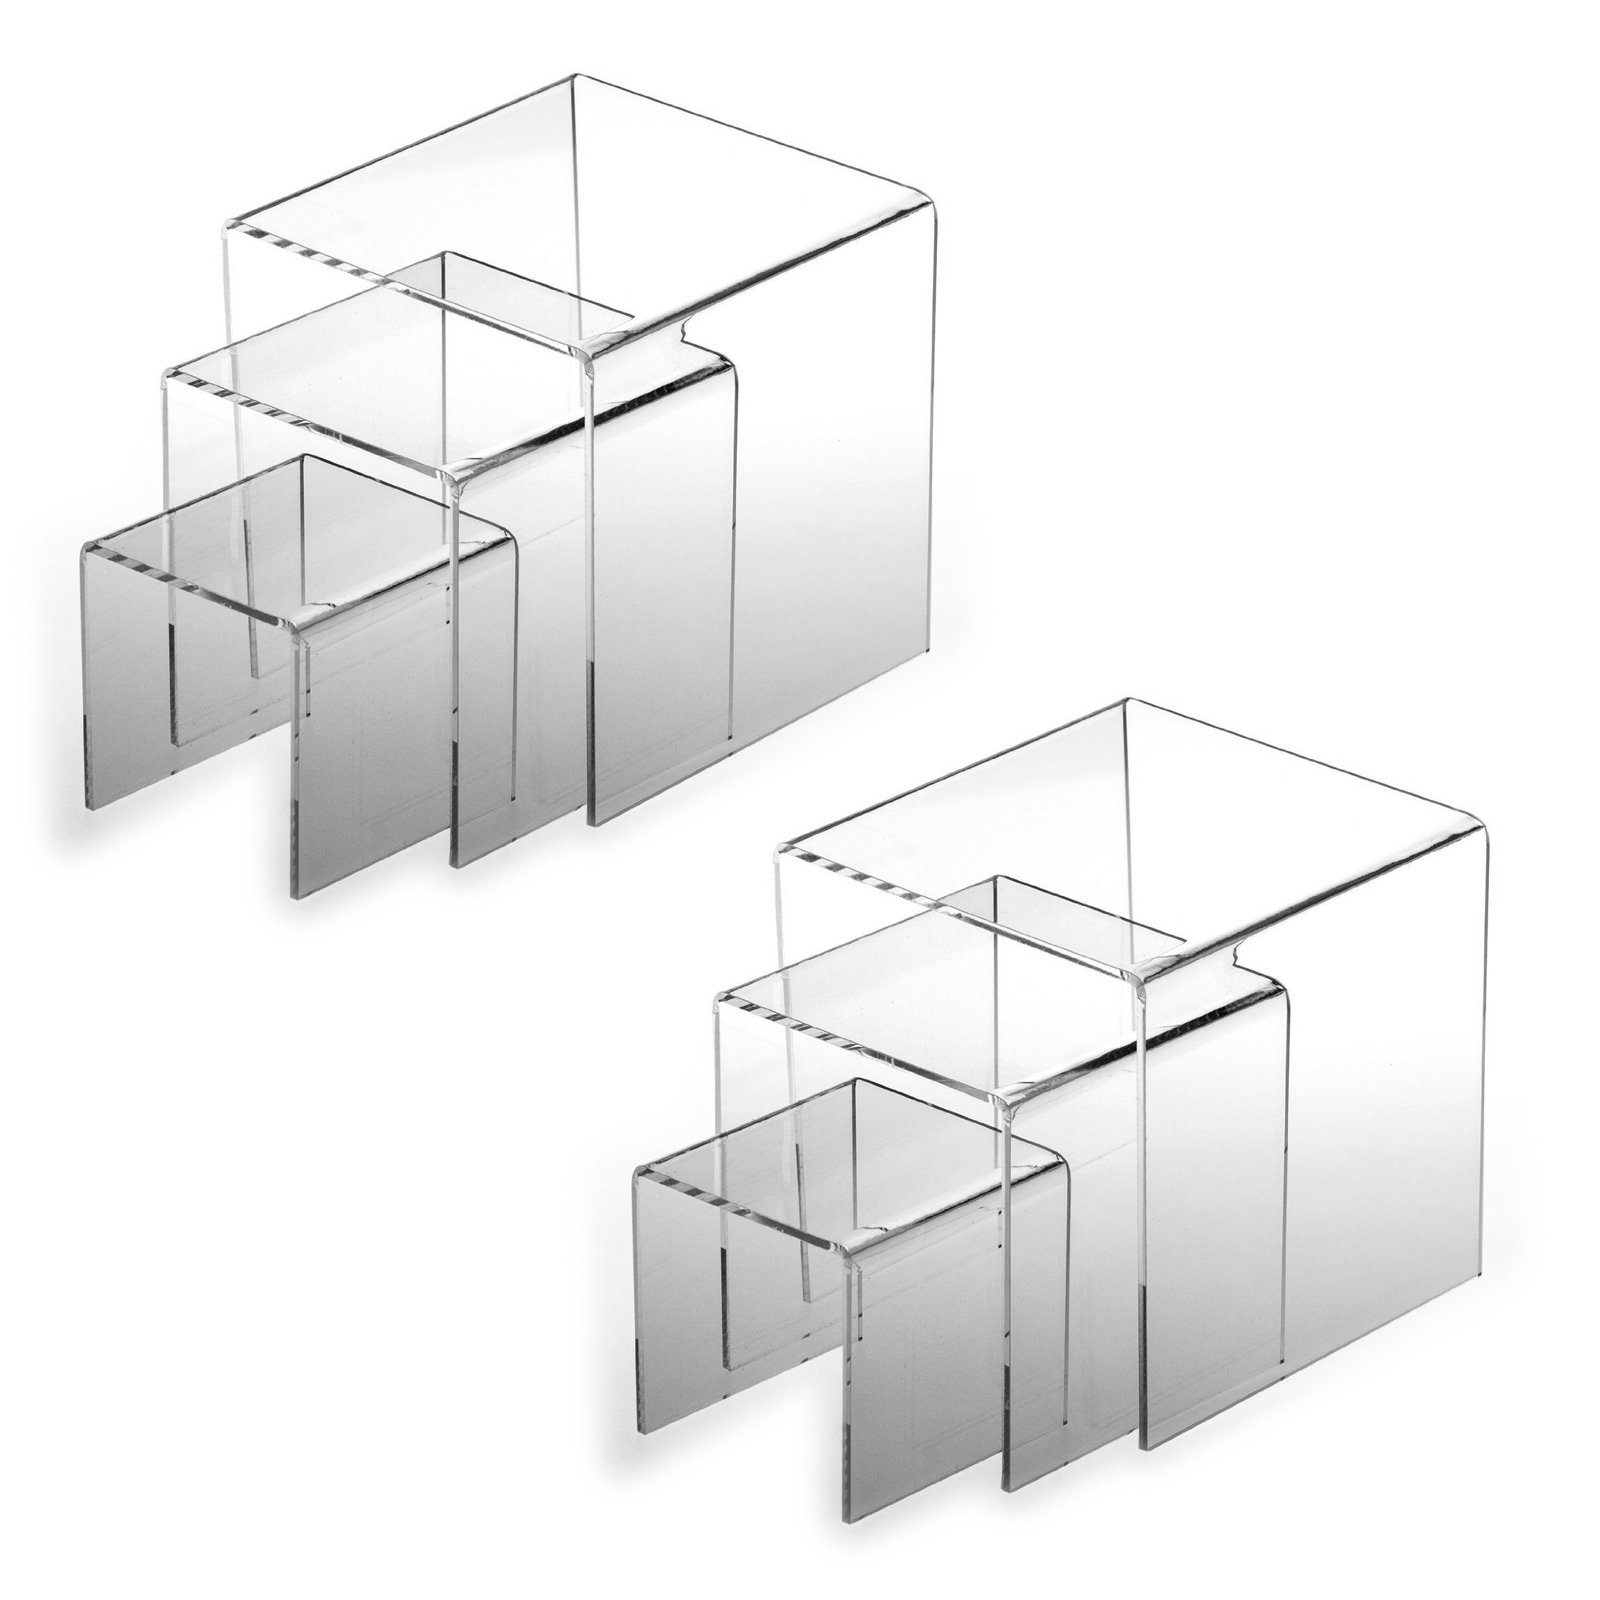 Adorox Top Quality (2 Set) Clear Acrylic Display Riser by Adorox (Image #1)